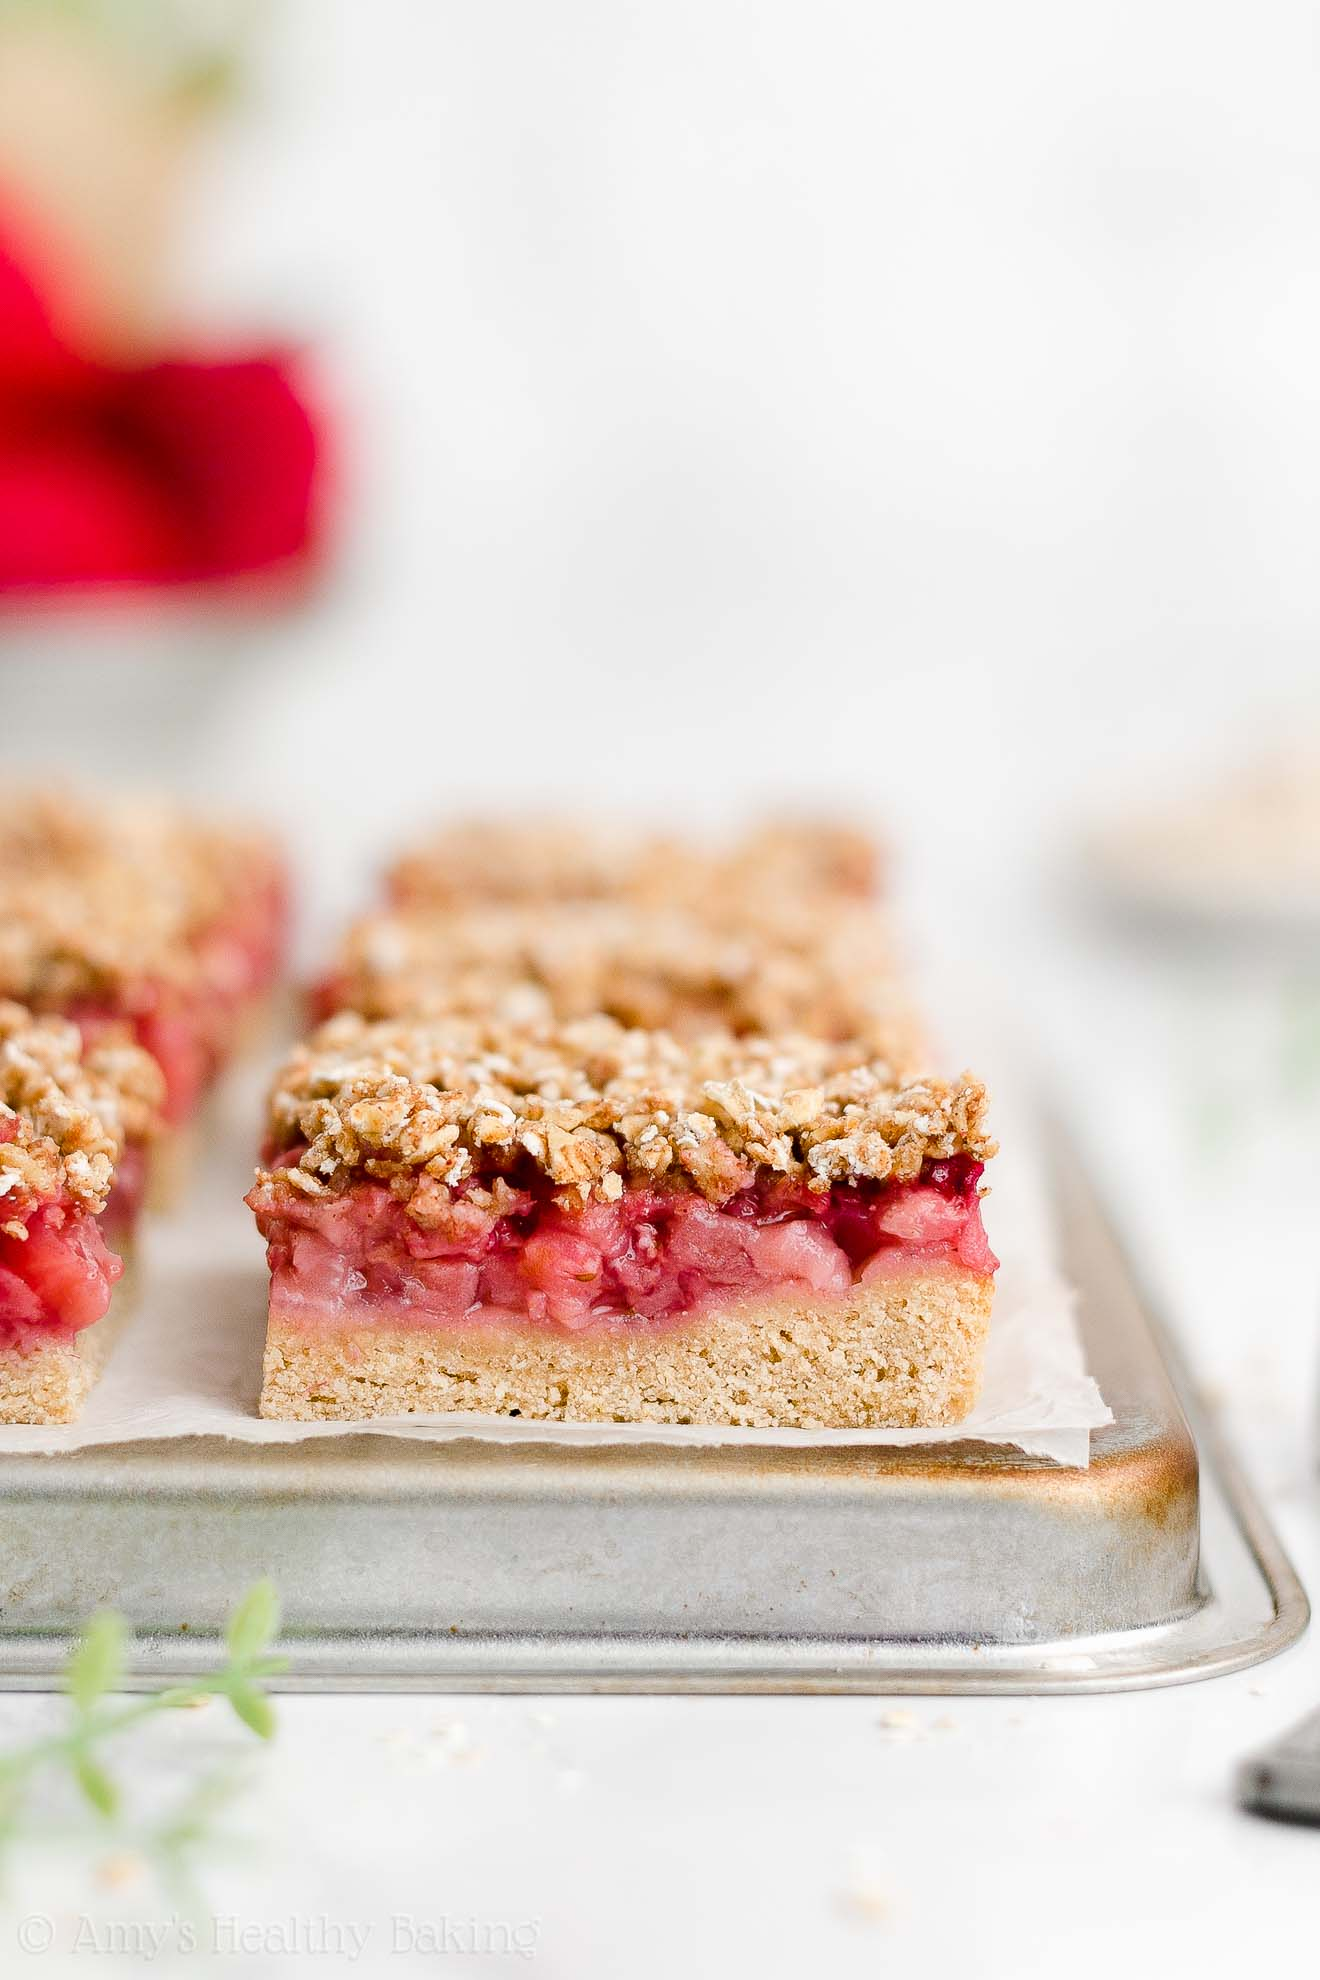 Best Healthy Gluten Free Dairy Free Eggless Strawberry Oatmeal Crumble Bars